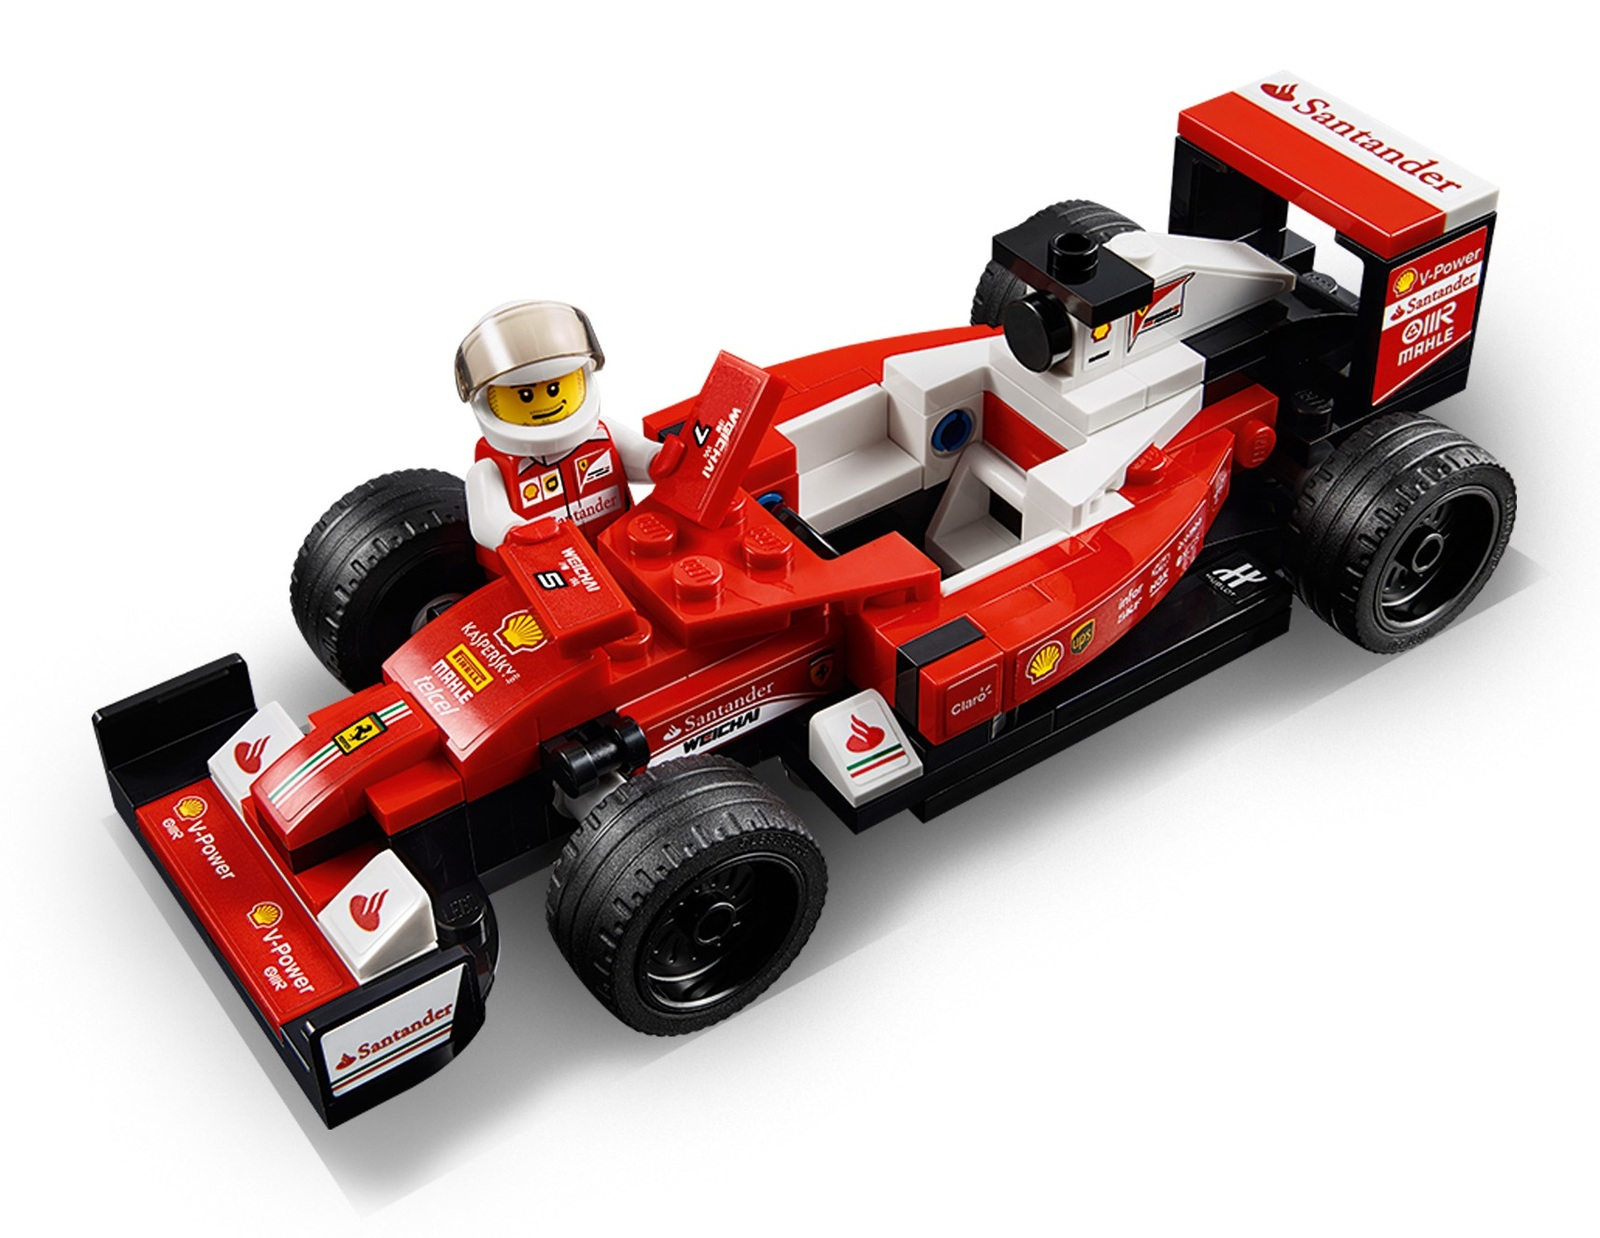 lego speed champions scuderia ferrari sf16 h 75879 toy at mighty ape nz. Black Bedroom Furniture Sets. Home Design Ideas